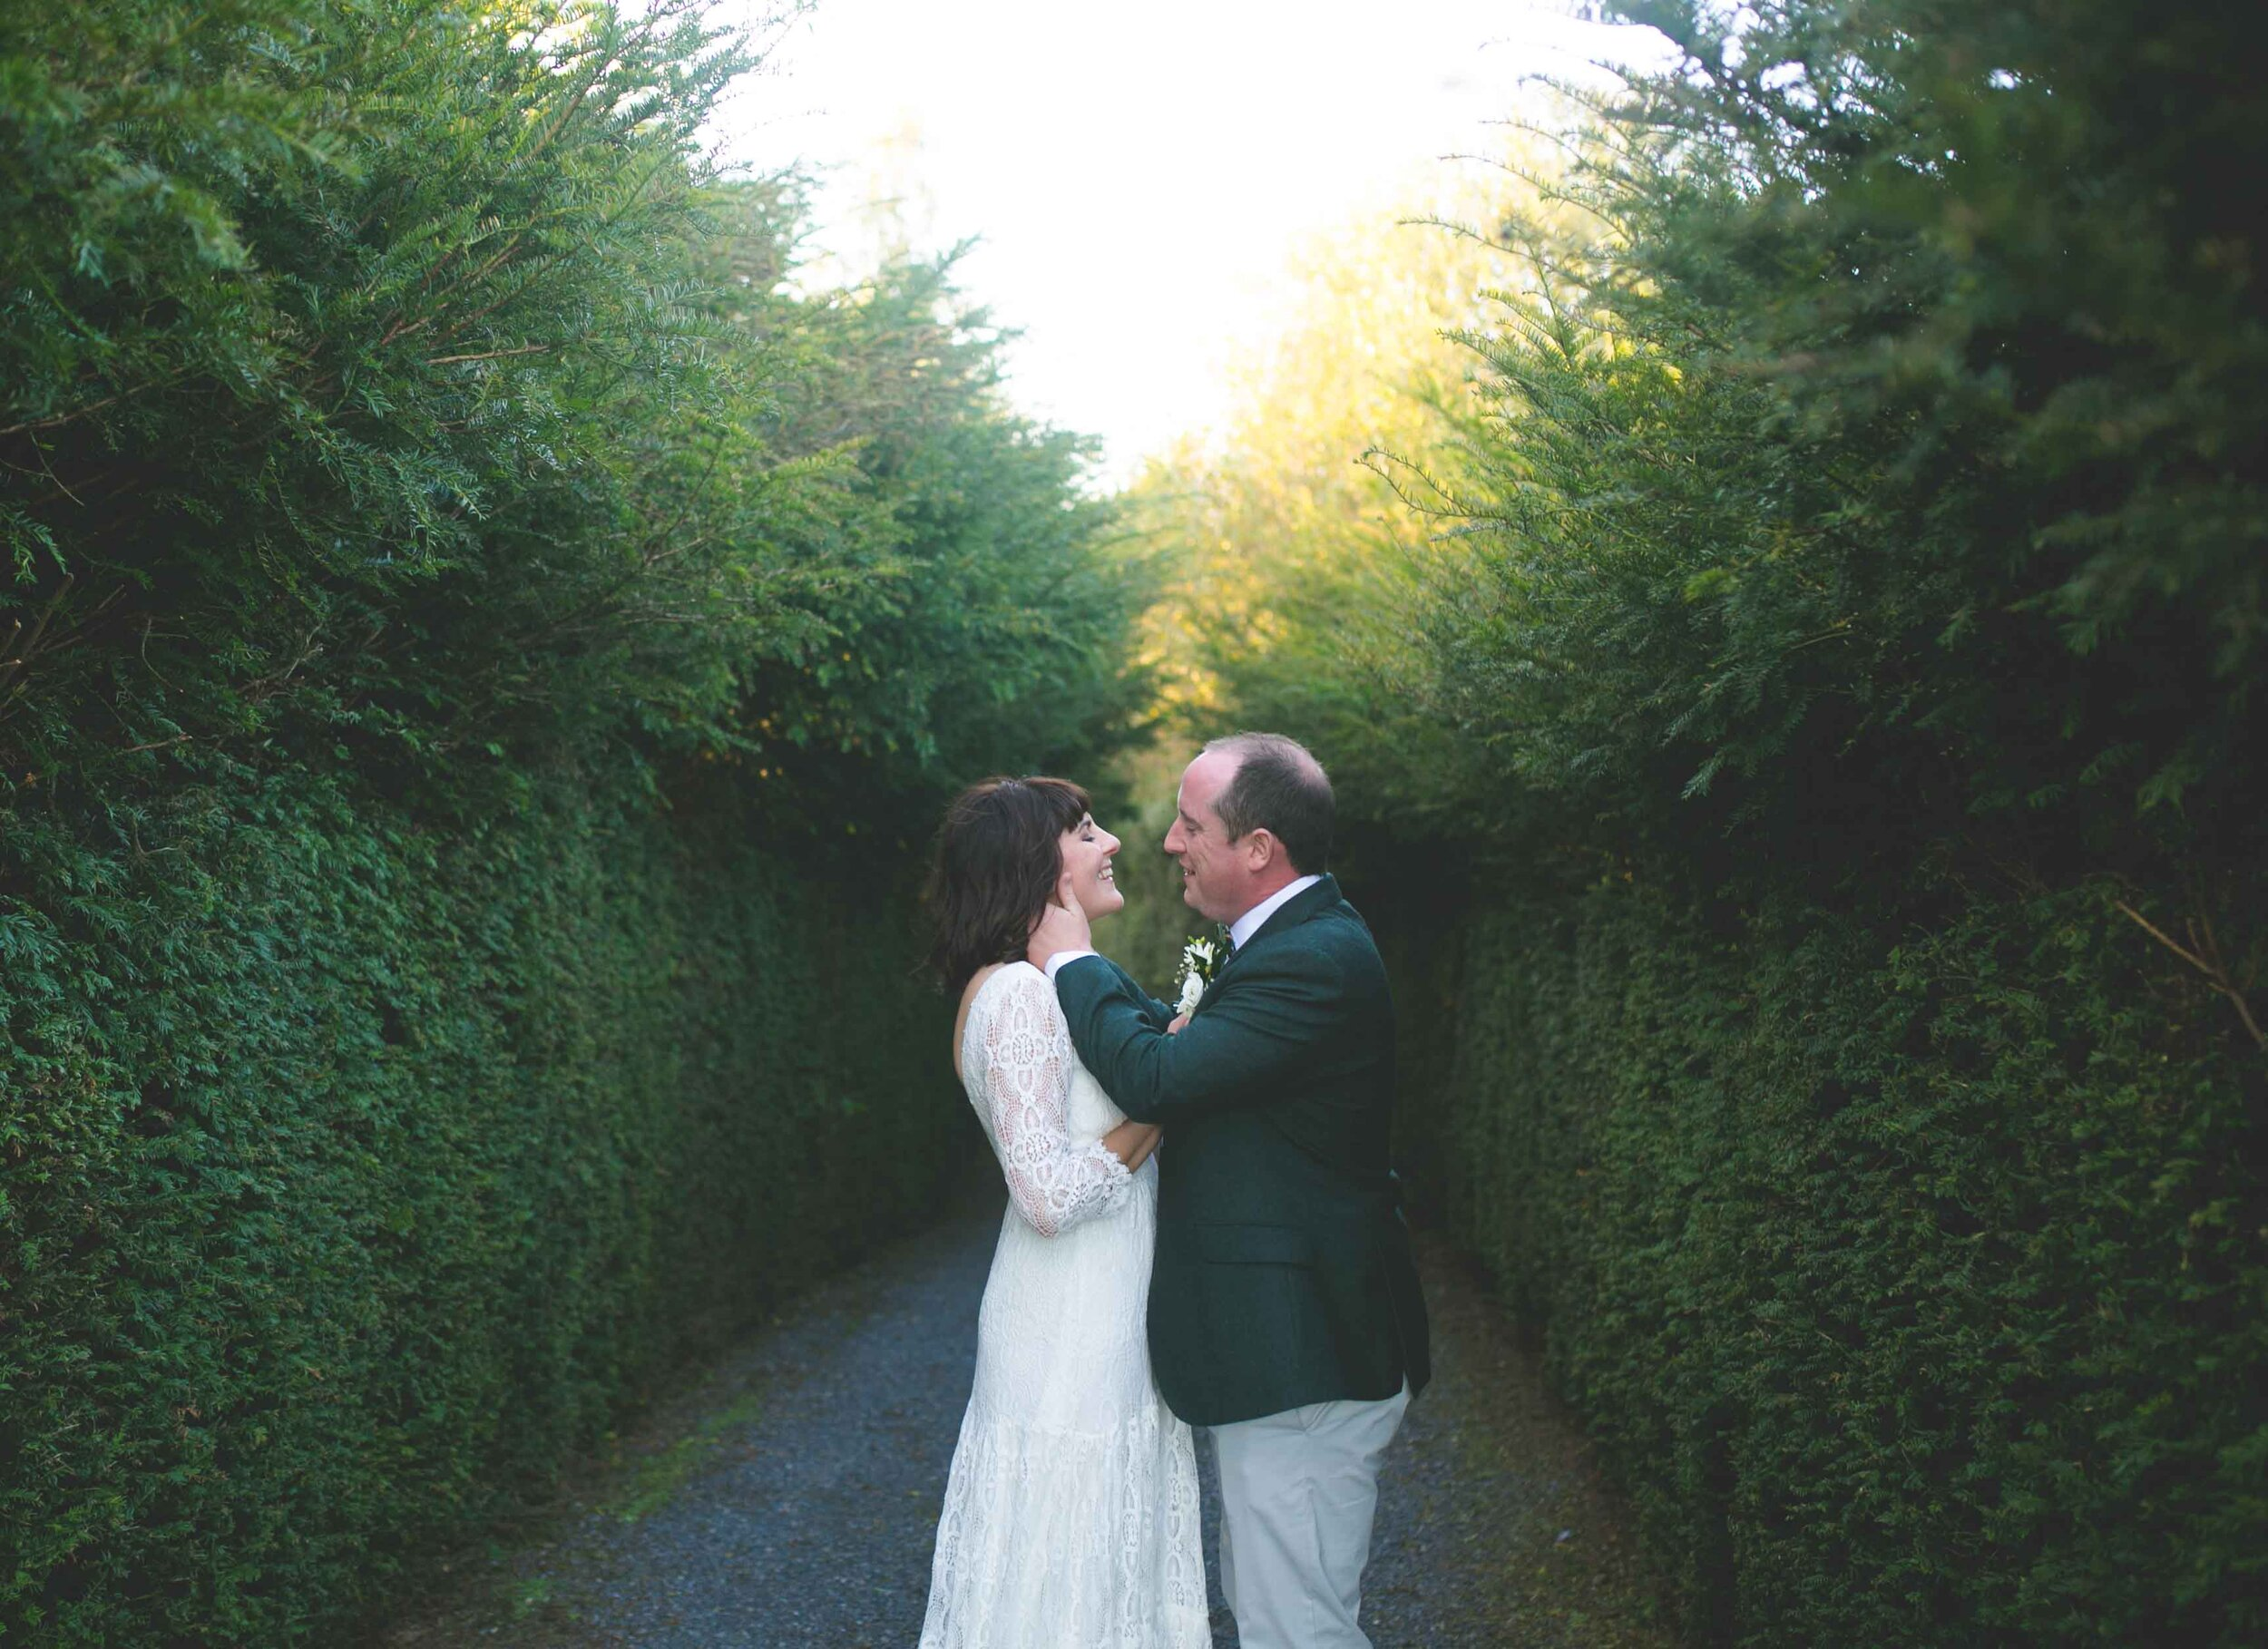 Claire & Mike-136.jpg